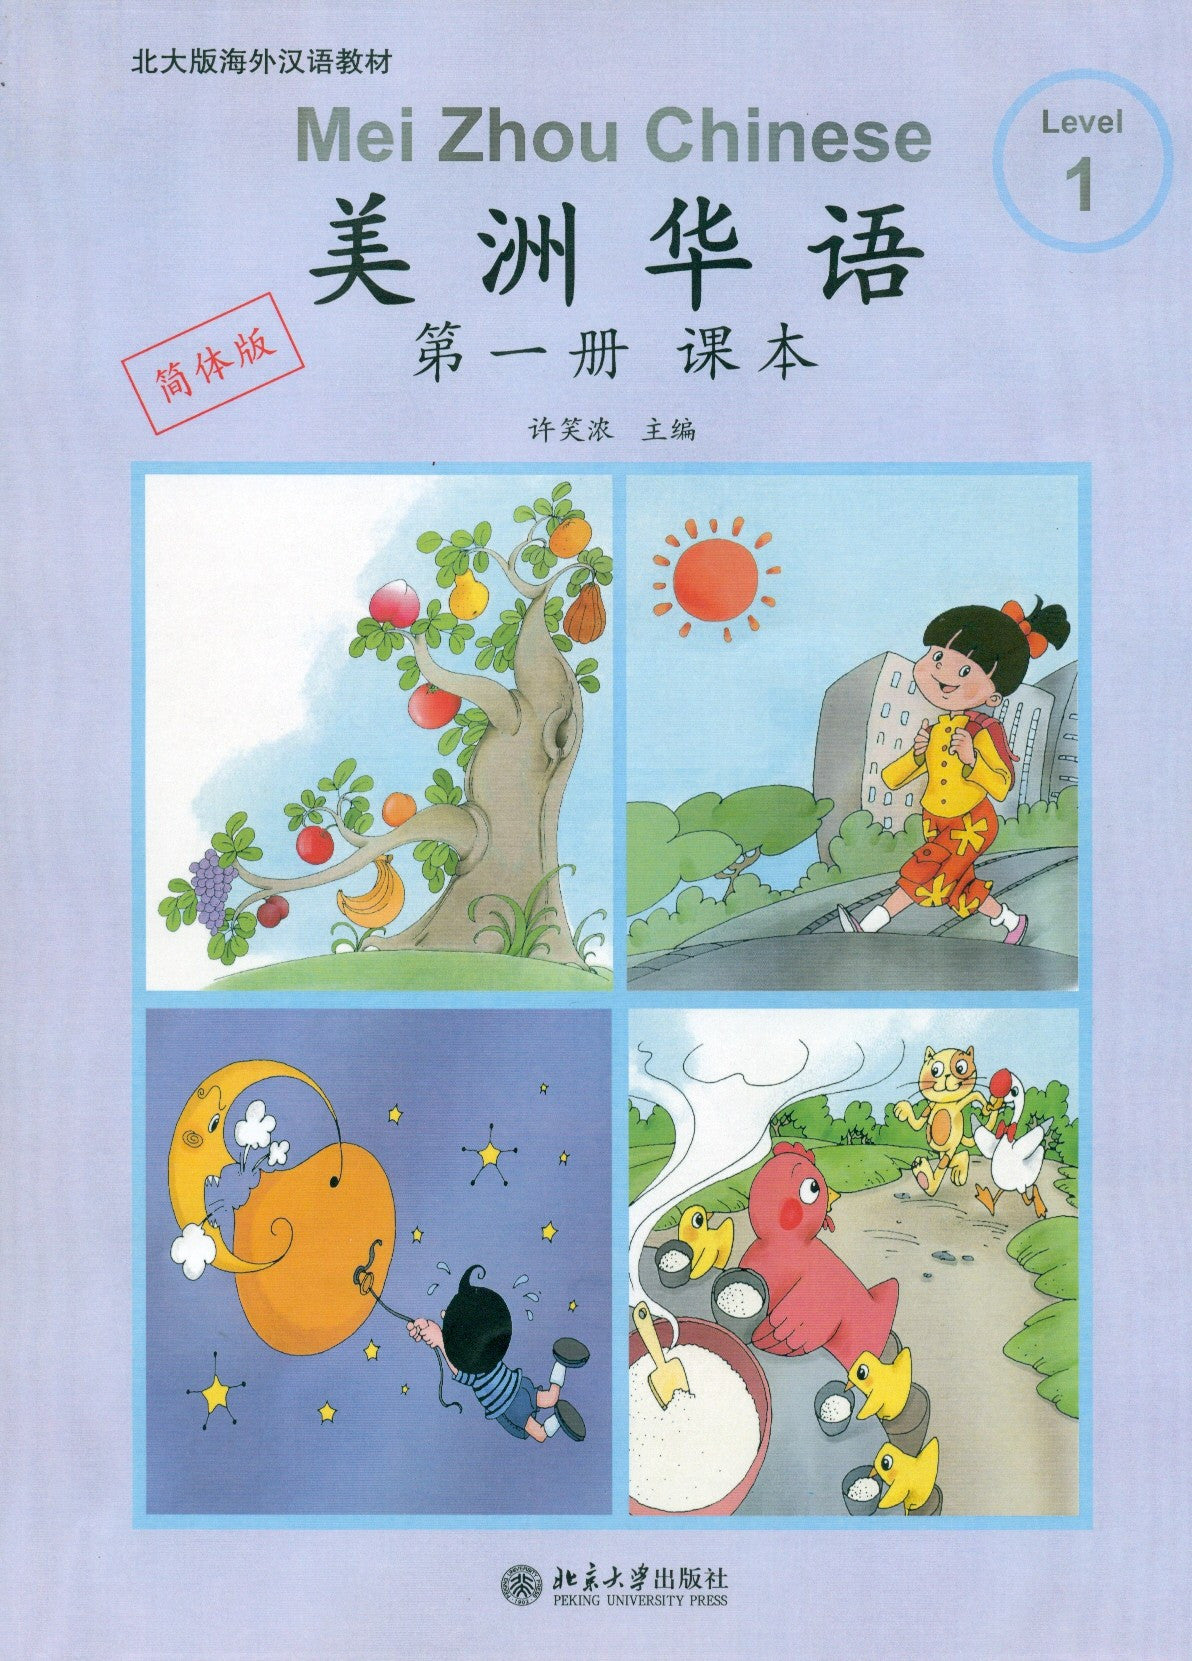 Mei Zhou Chinese Set 1  (Simplified Chinese Character)